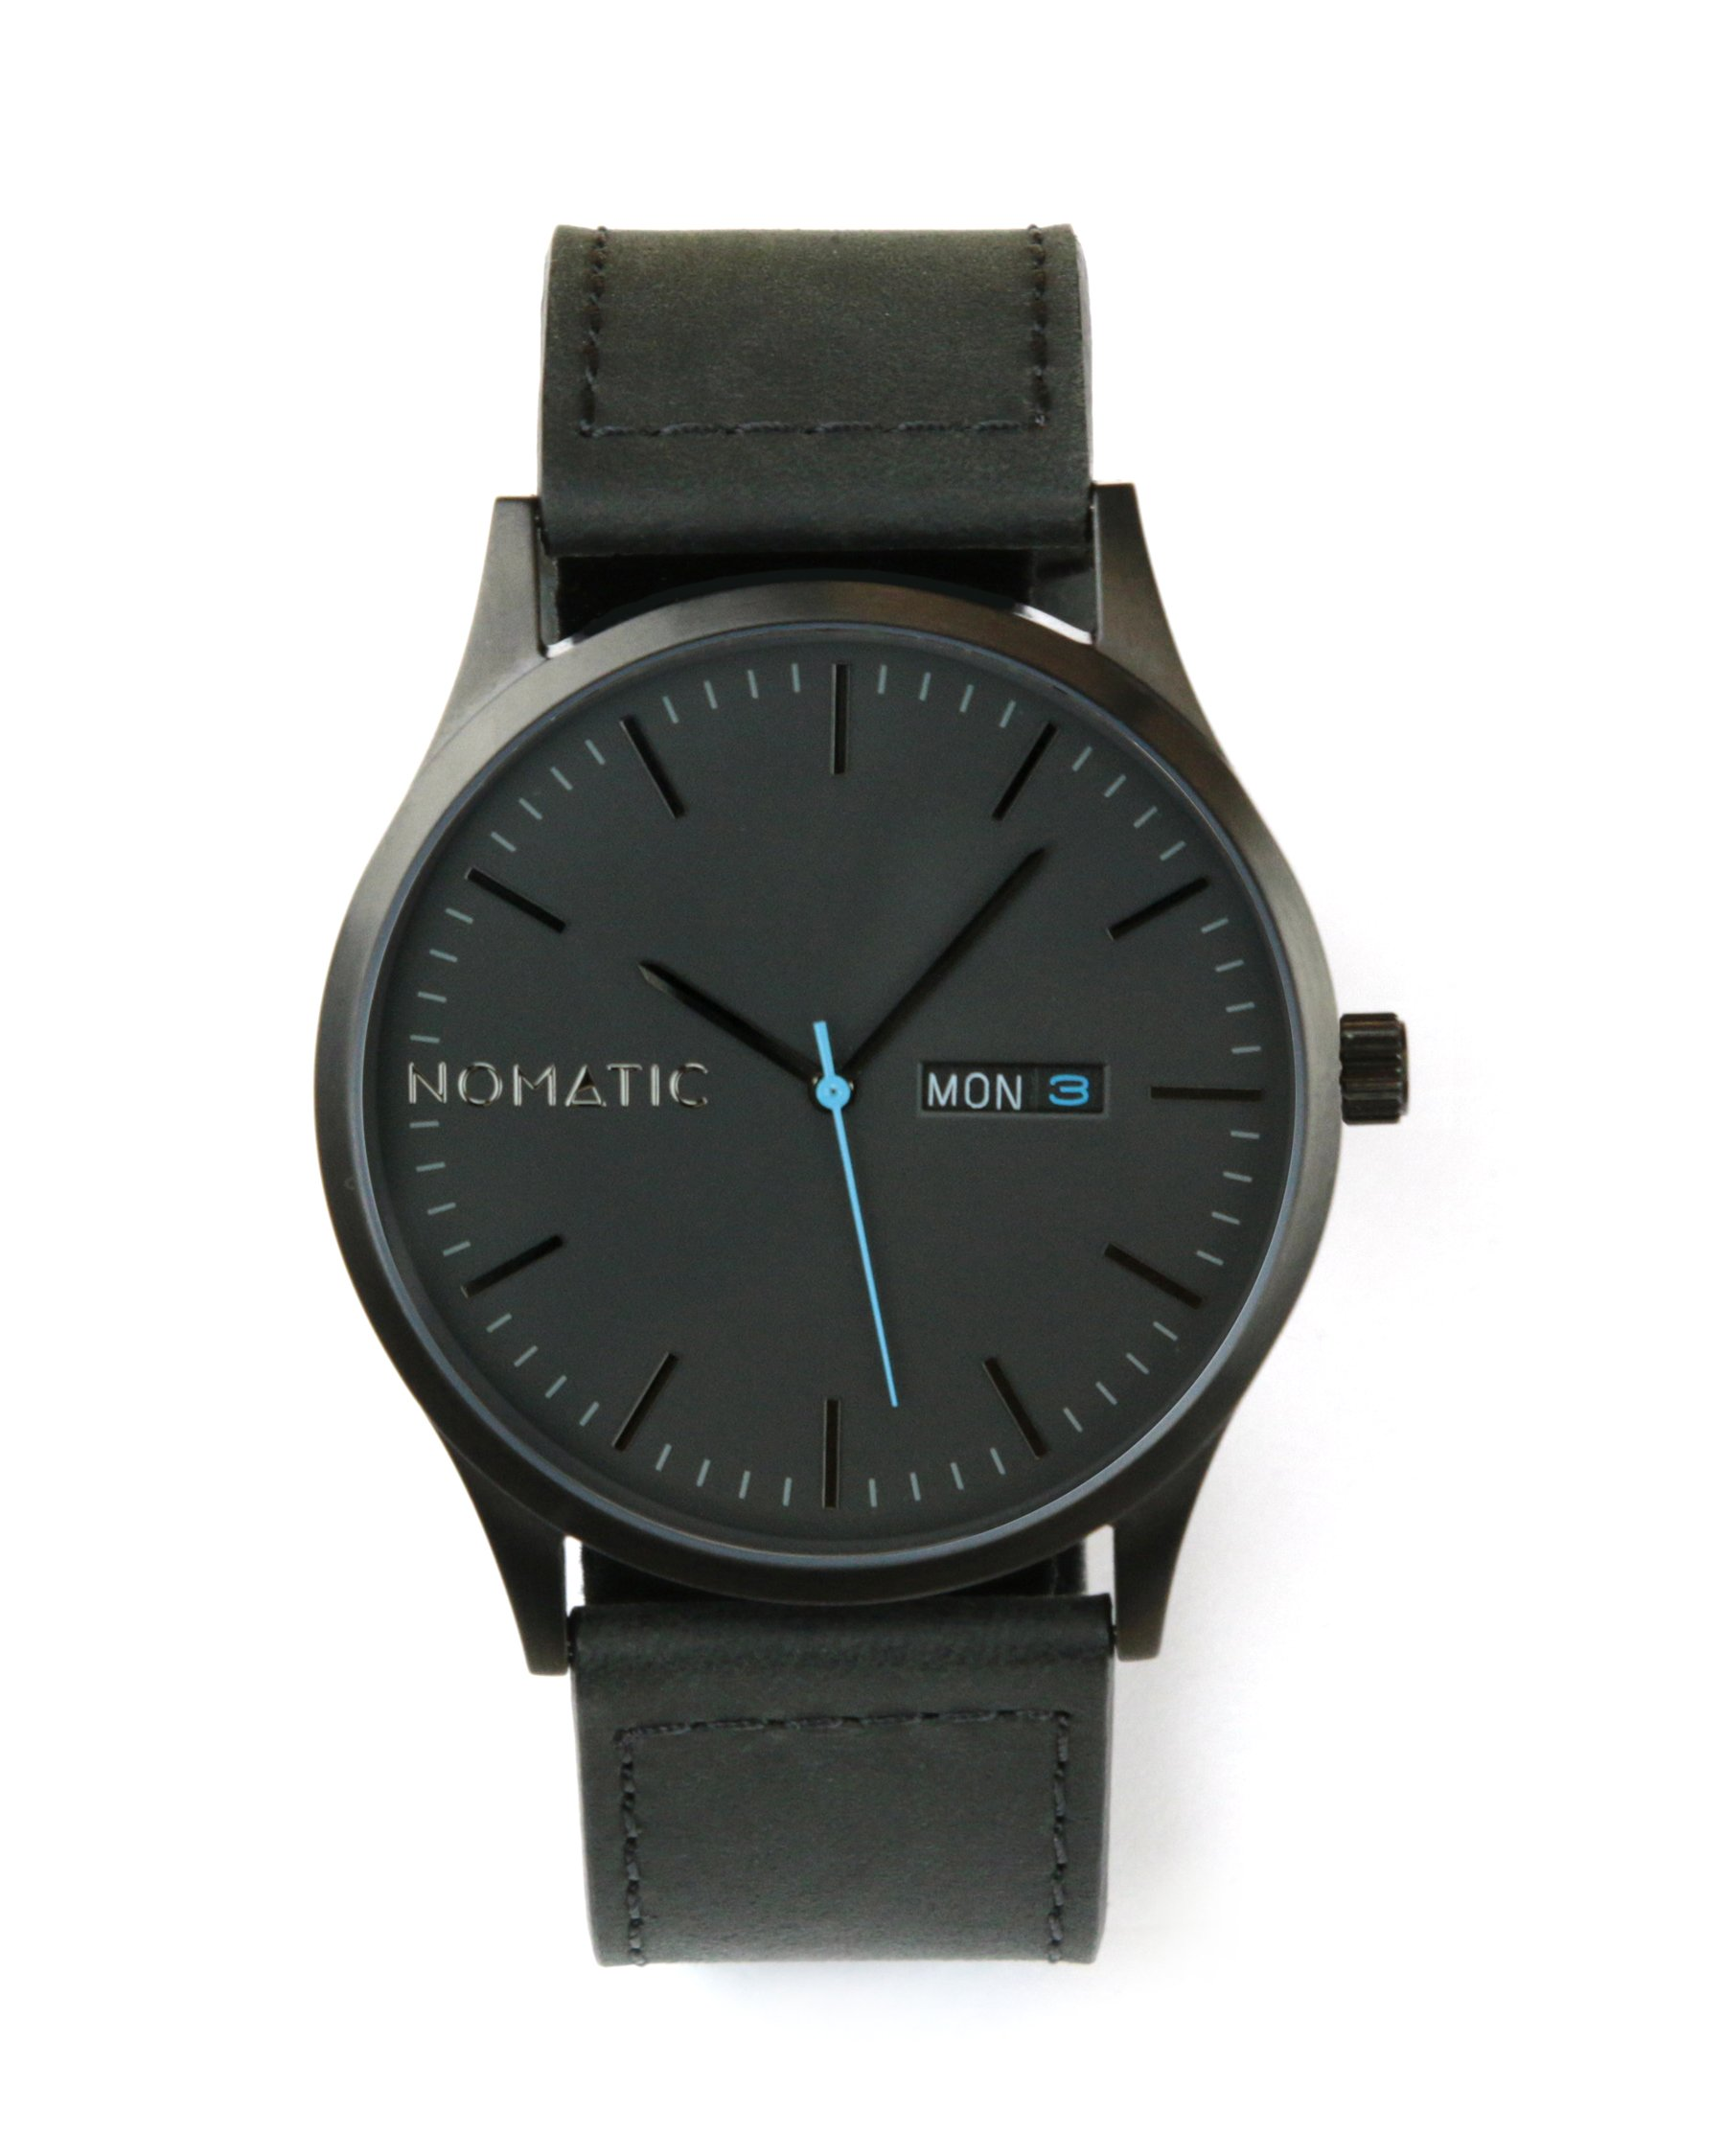 The Nomatic Leather Band Water Resistant Watch - Black by NOMATIC (Image #1)